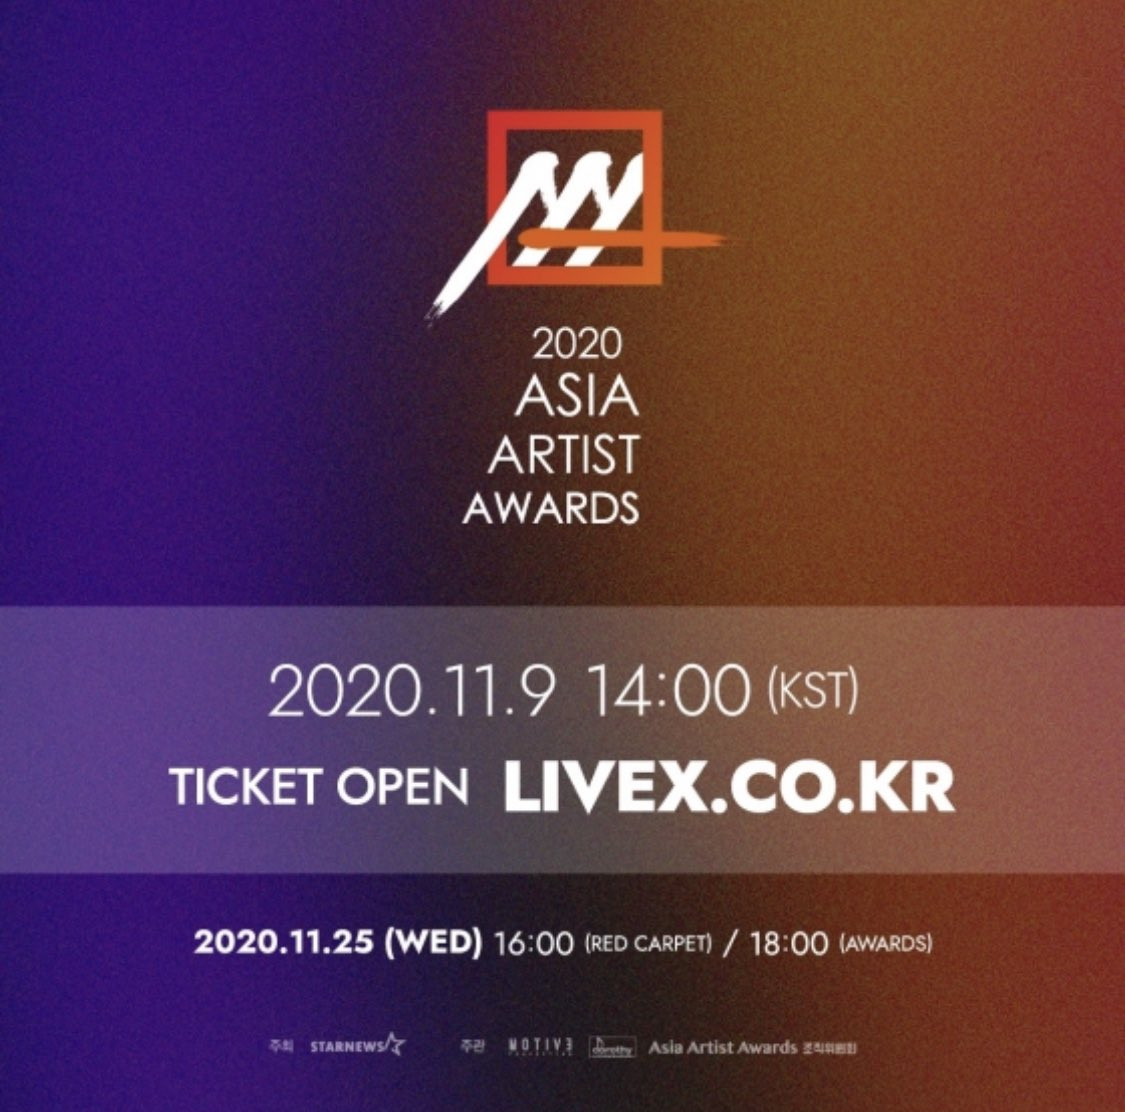 201109 AAA 2020 Livestream Tickets will be available for purchase today at 2 PM KST   🔗   AAA 2020 Red Carpet  📅 201125 🕓 4 PM KST  AAA 2020 Awards 📅 201125 🕓 6 PM KST   #NCT #태용 #TAEYONG